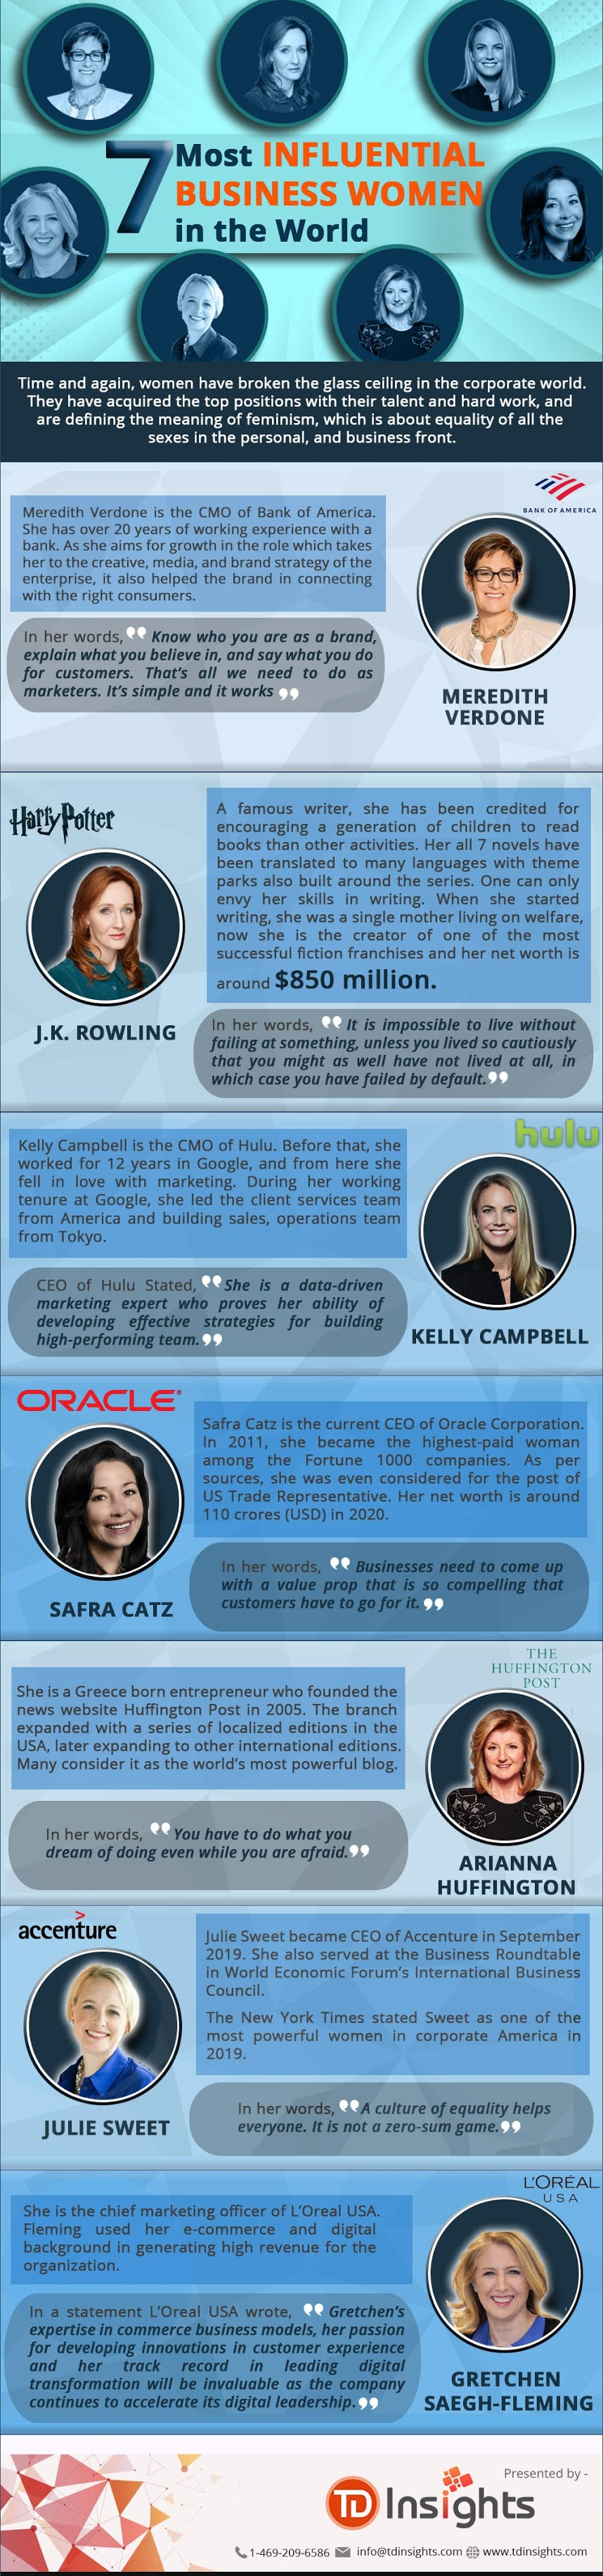 7 Most Influential Business Women in the World #infographic #Business #infographics #Business Women #women